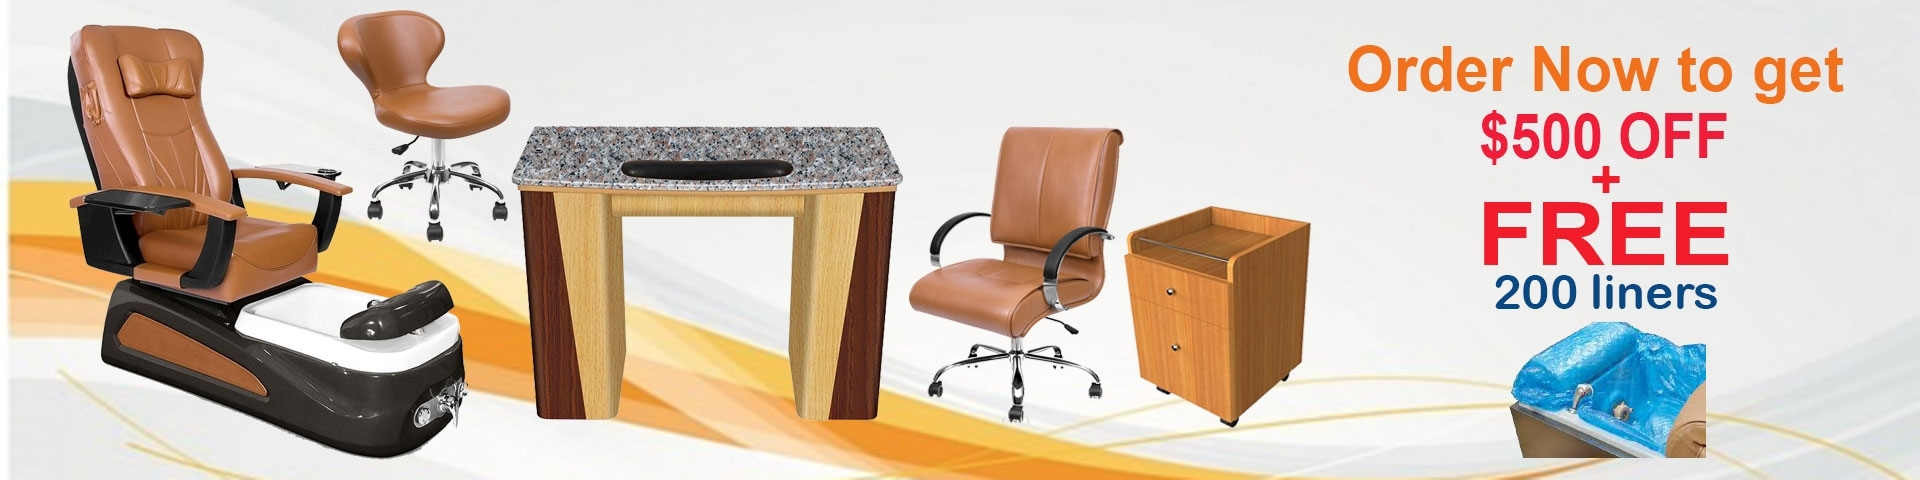 Promotional banner salon package: PSD-100 pedicure chair, VL-100 manicure table, Classic customer chairs and stools